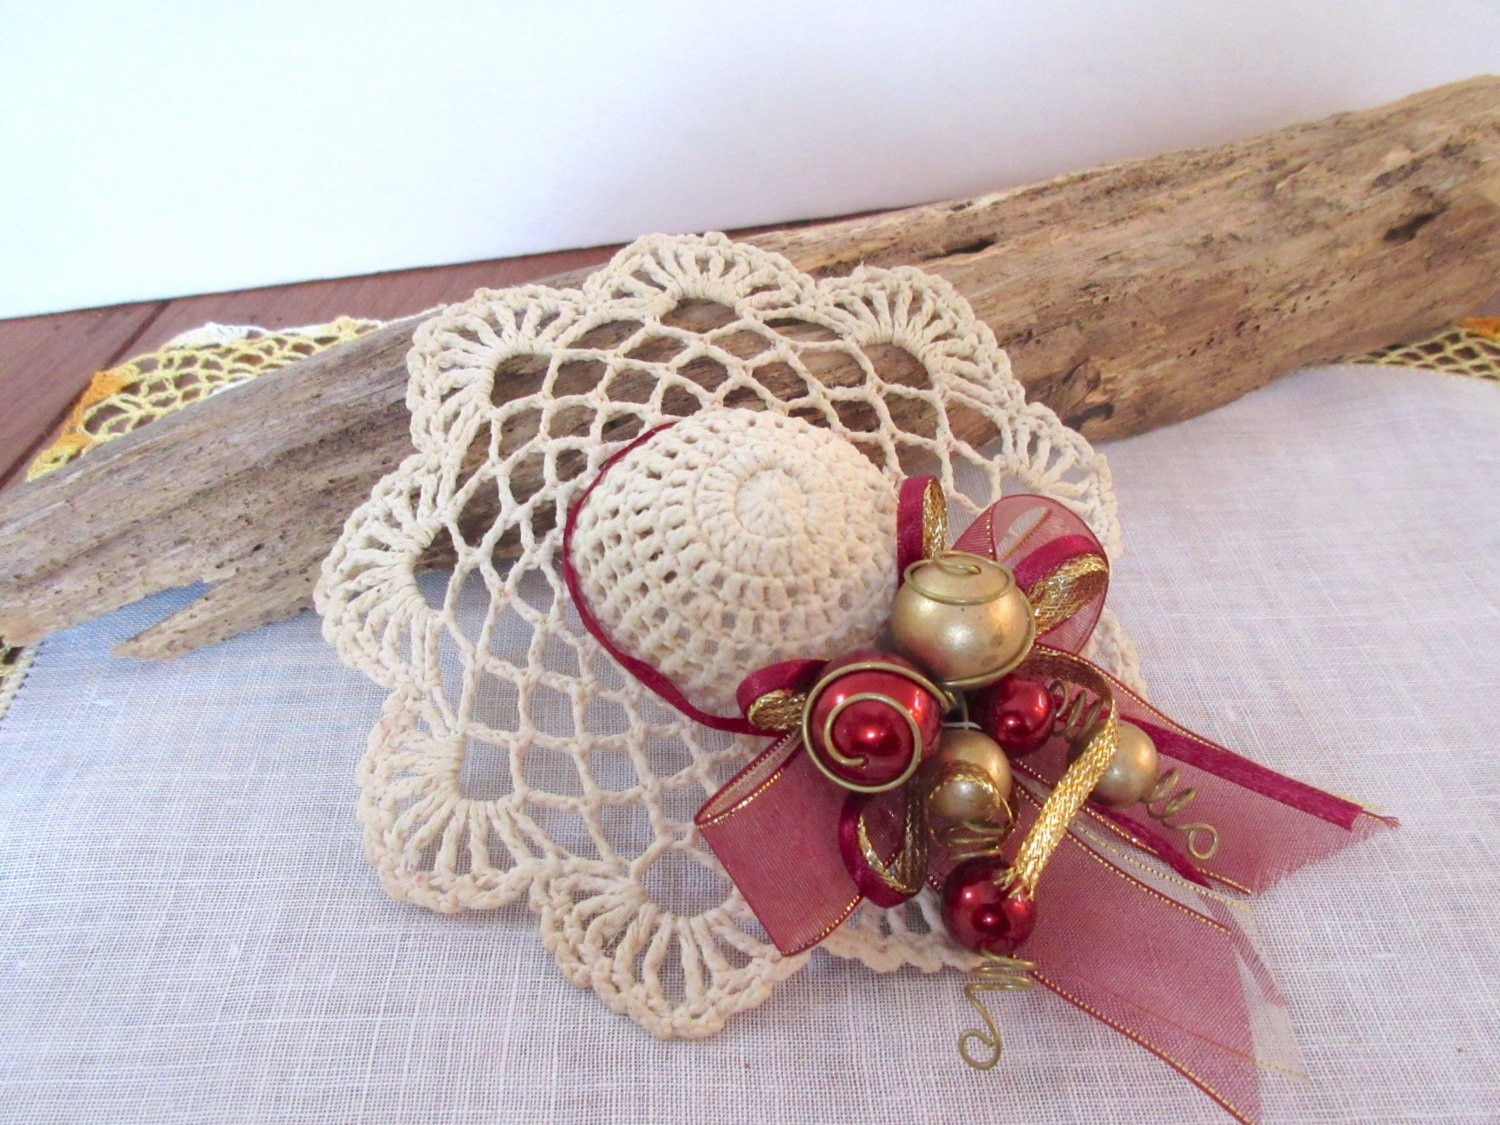 Beautiful Crochet Hat Doll Making Supplies Doll Hat Doll Crochet Supplies Of Luxury 43 Photos Crochet Supplies